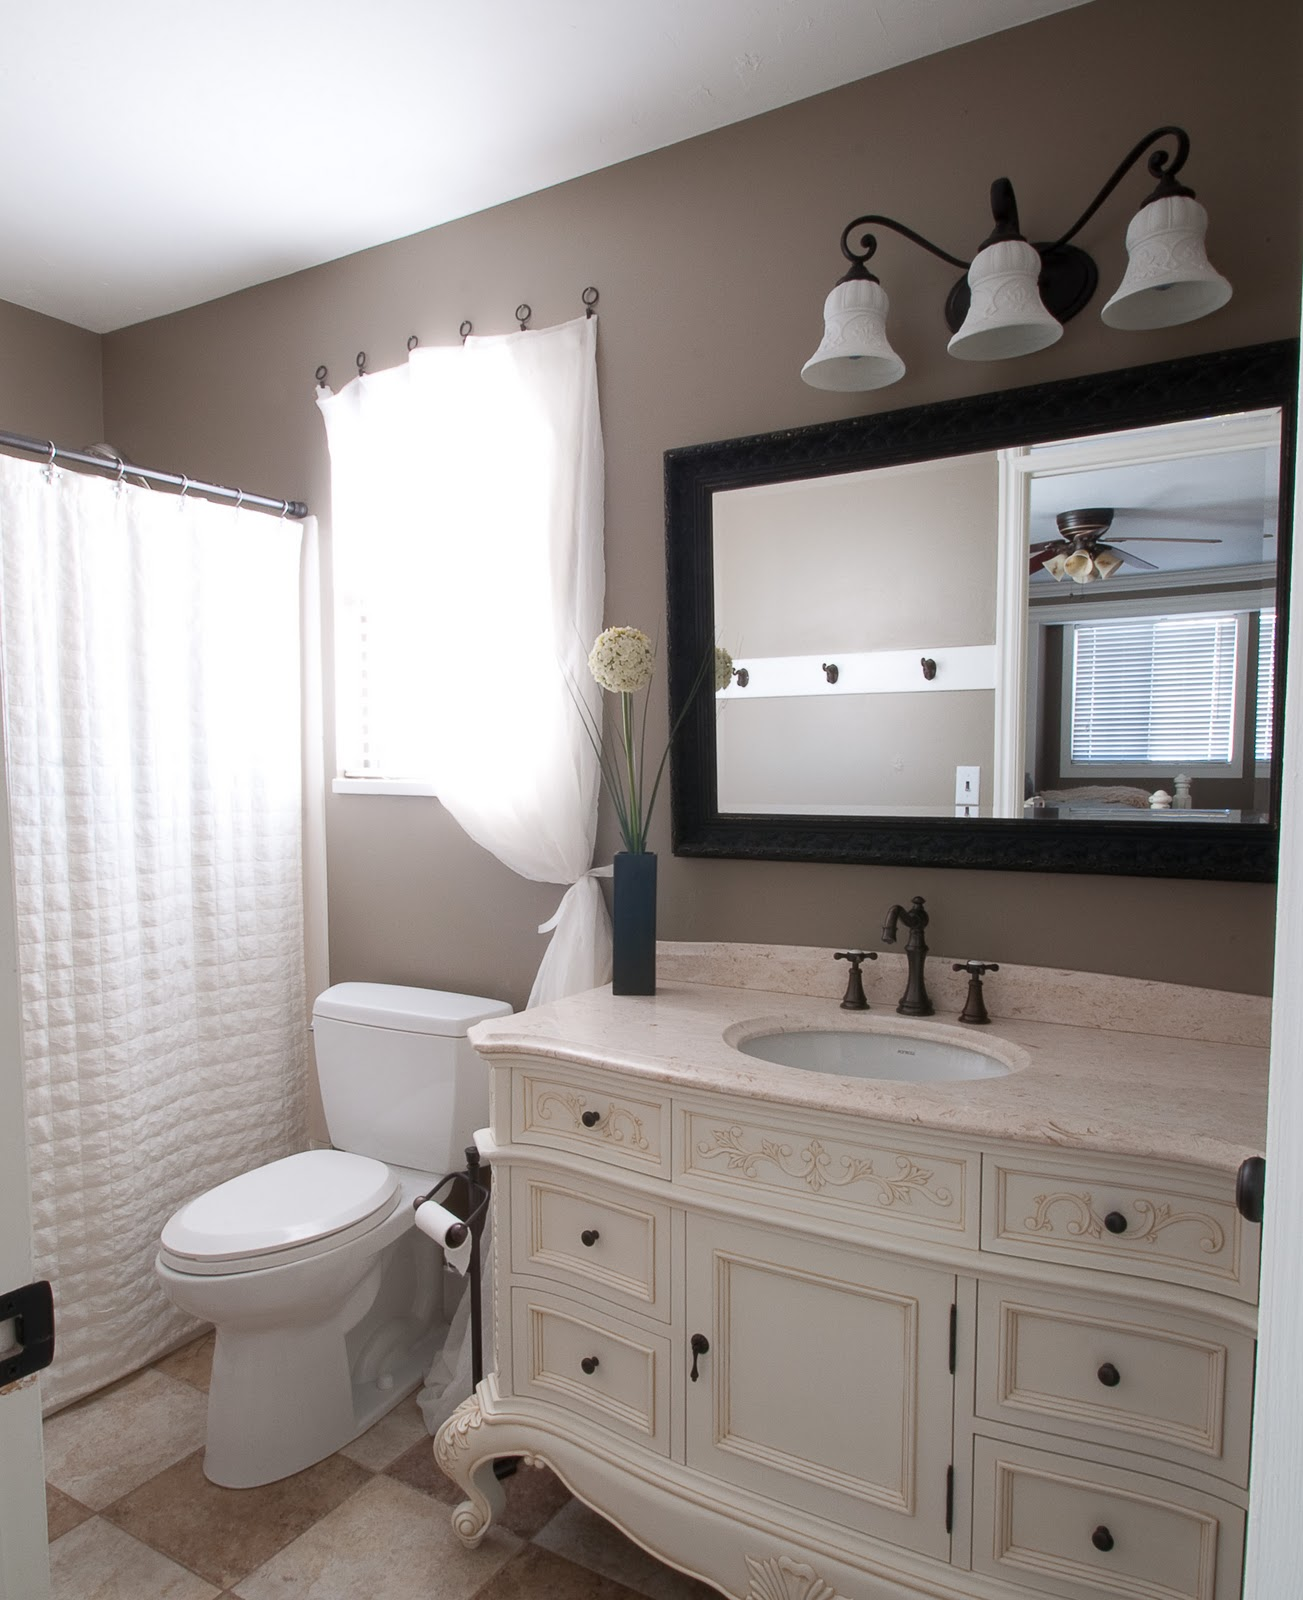 Start at Home Bathroom REDO